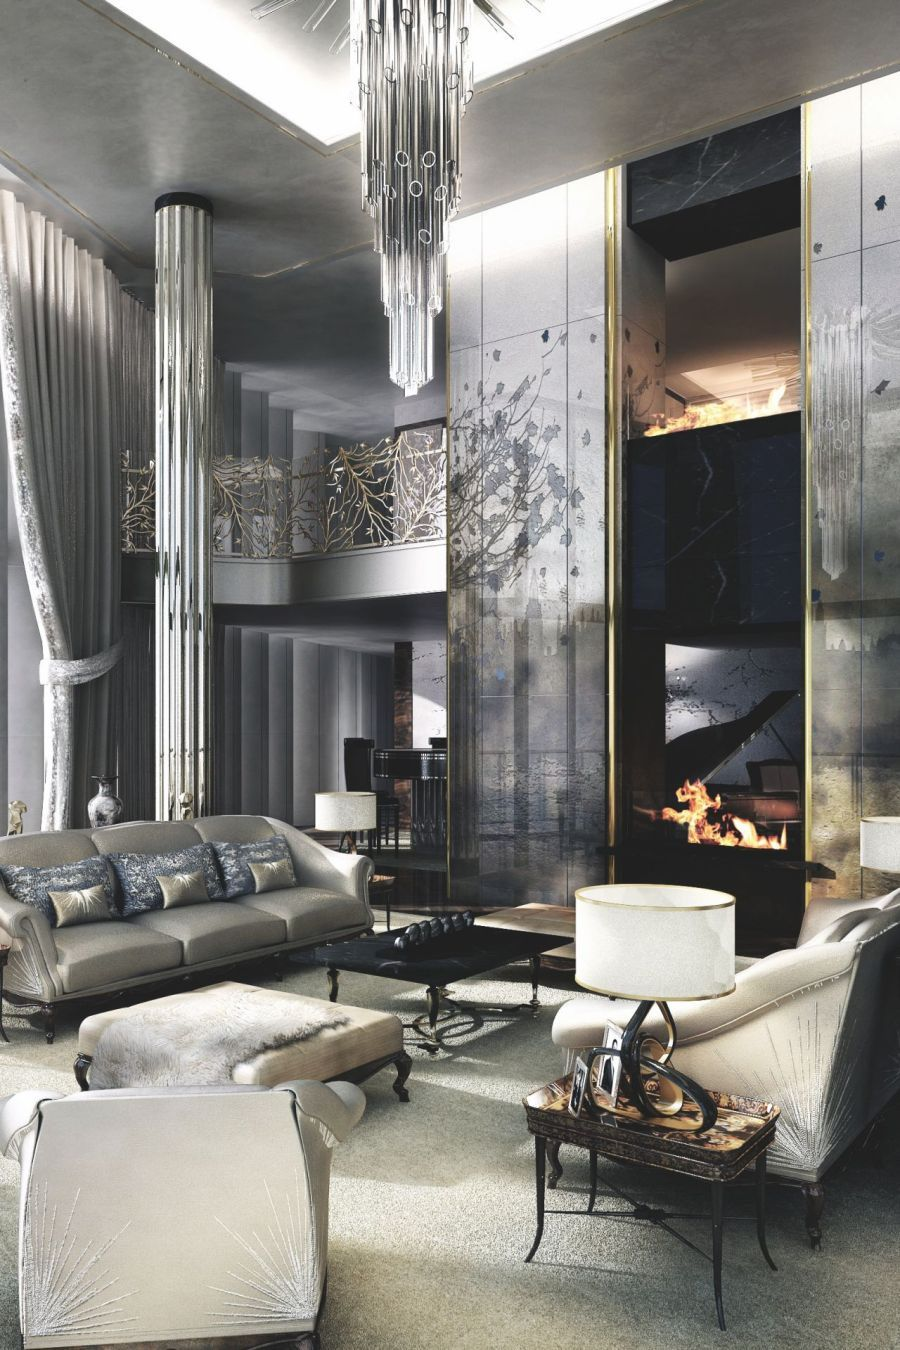 20 Living Room Ideas Modern Contemporary 2021 in 2020 ...